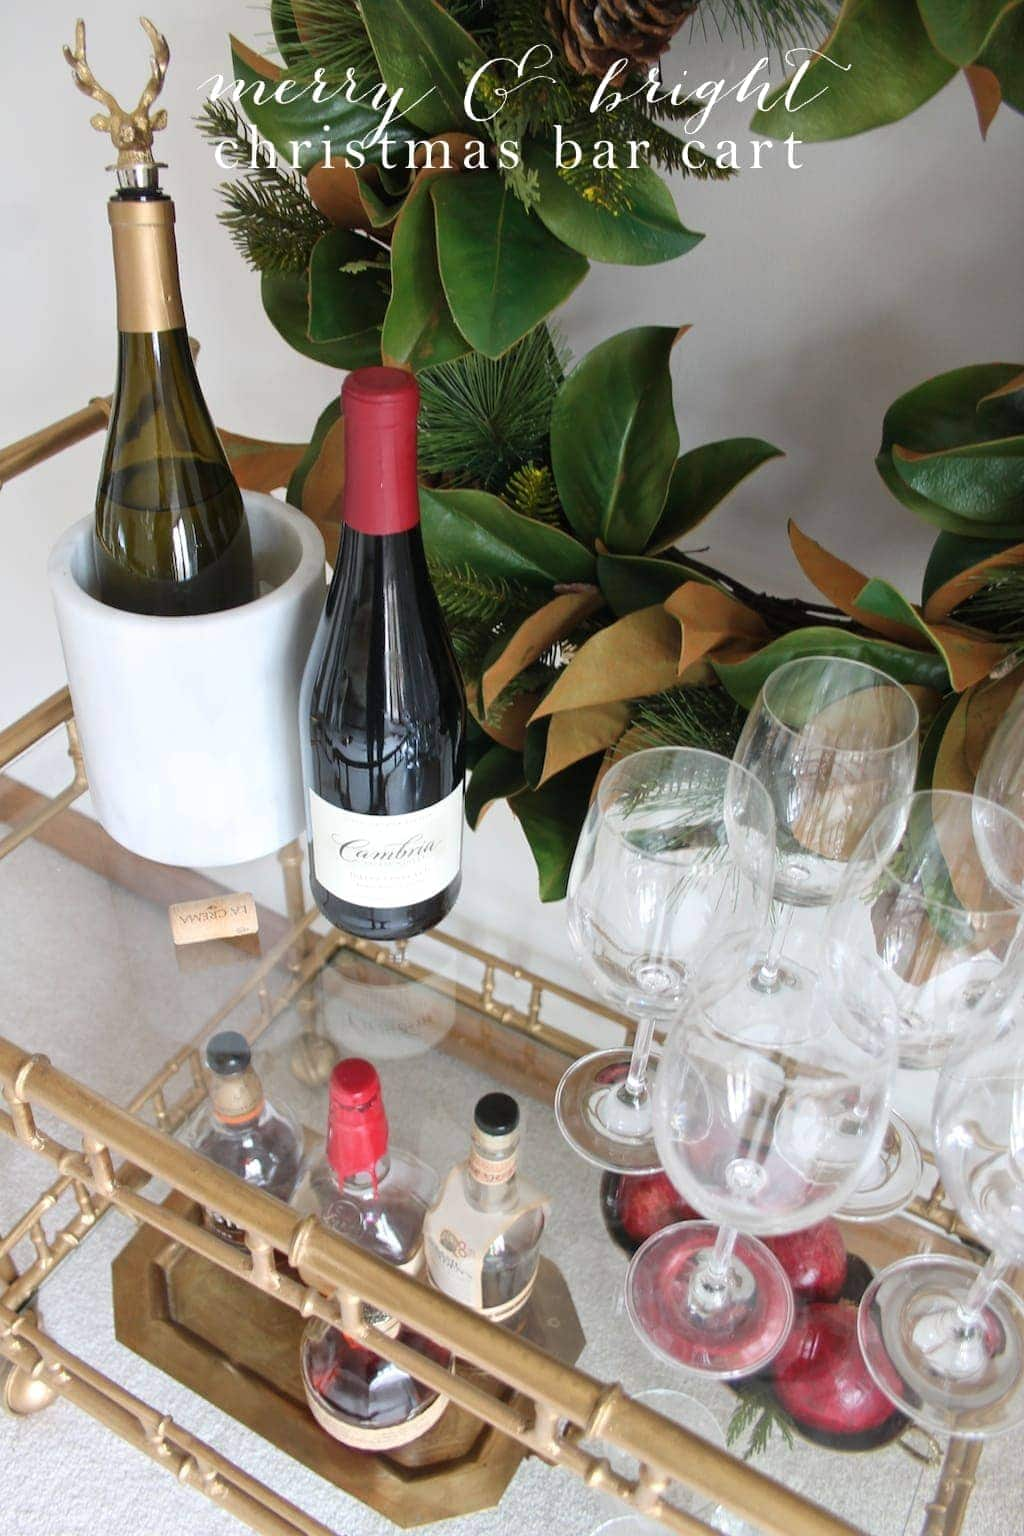 Tips & tricks for styling a bar cart for Christmas